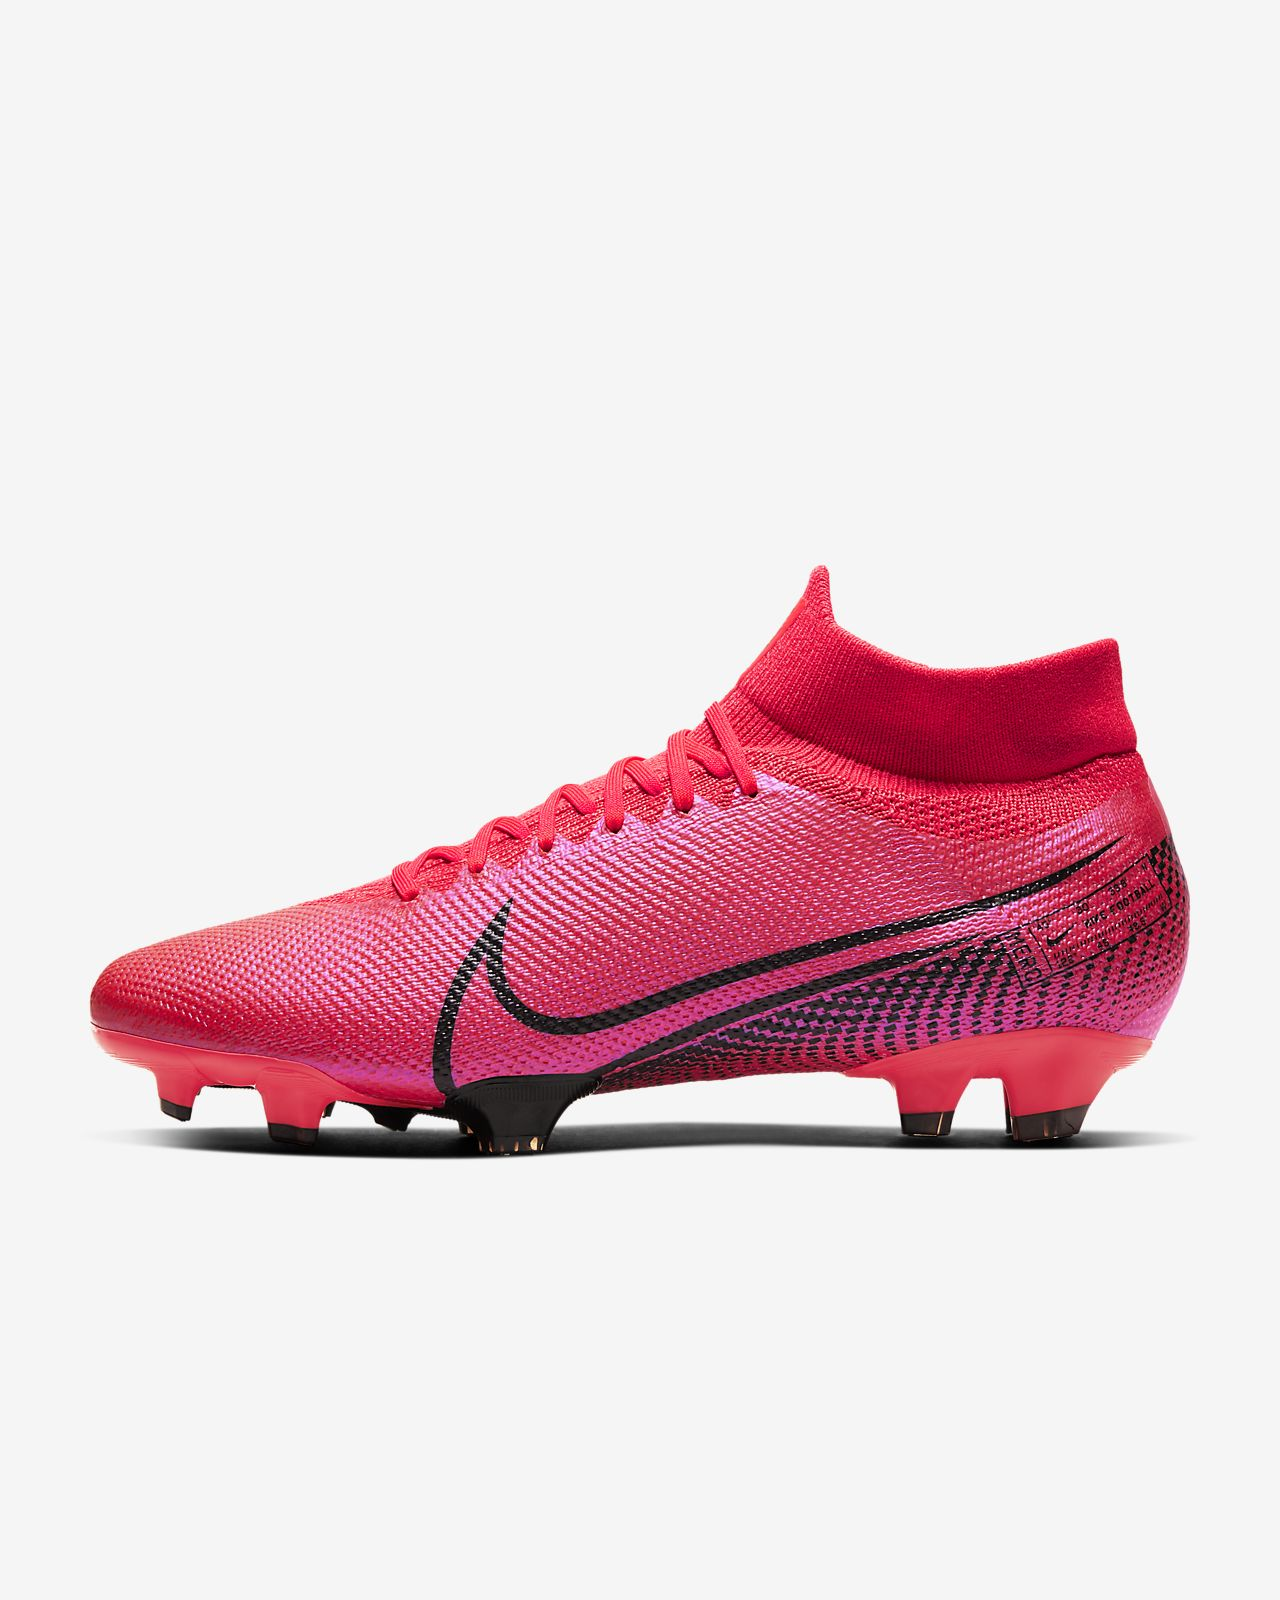 Nike Mercurial Superfly 7 Elite MDS FG Firm Ground Football Boot